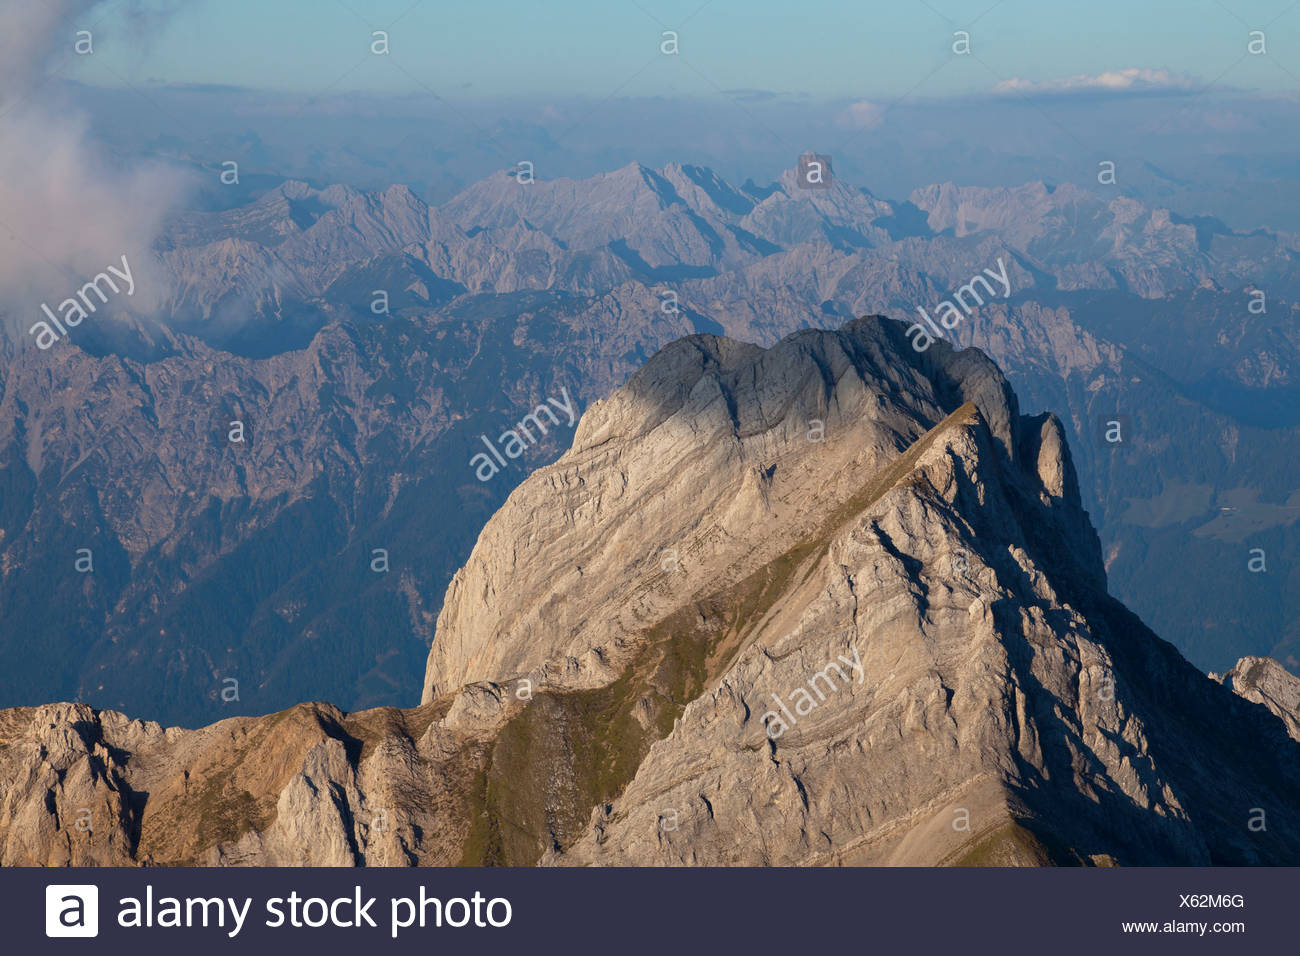 Evening mod in the Alpstein range with views of Mt Altmann from Mt Saentis, Switzerland, Europe - Stock Image